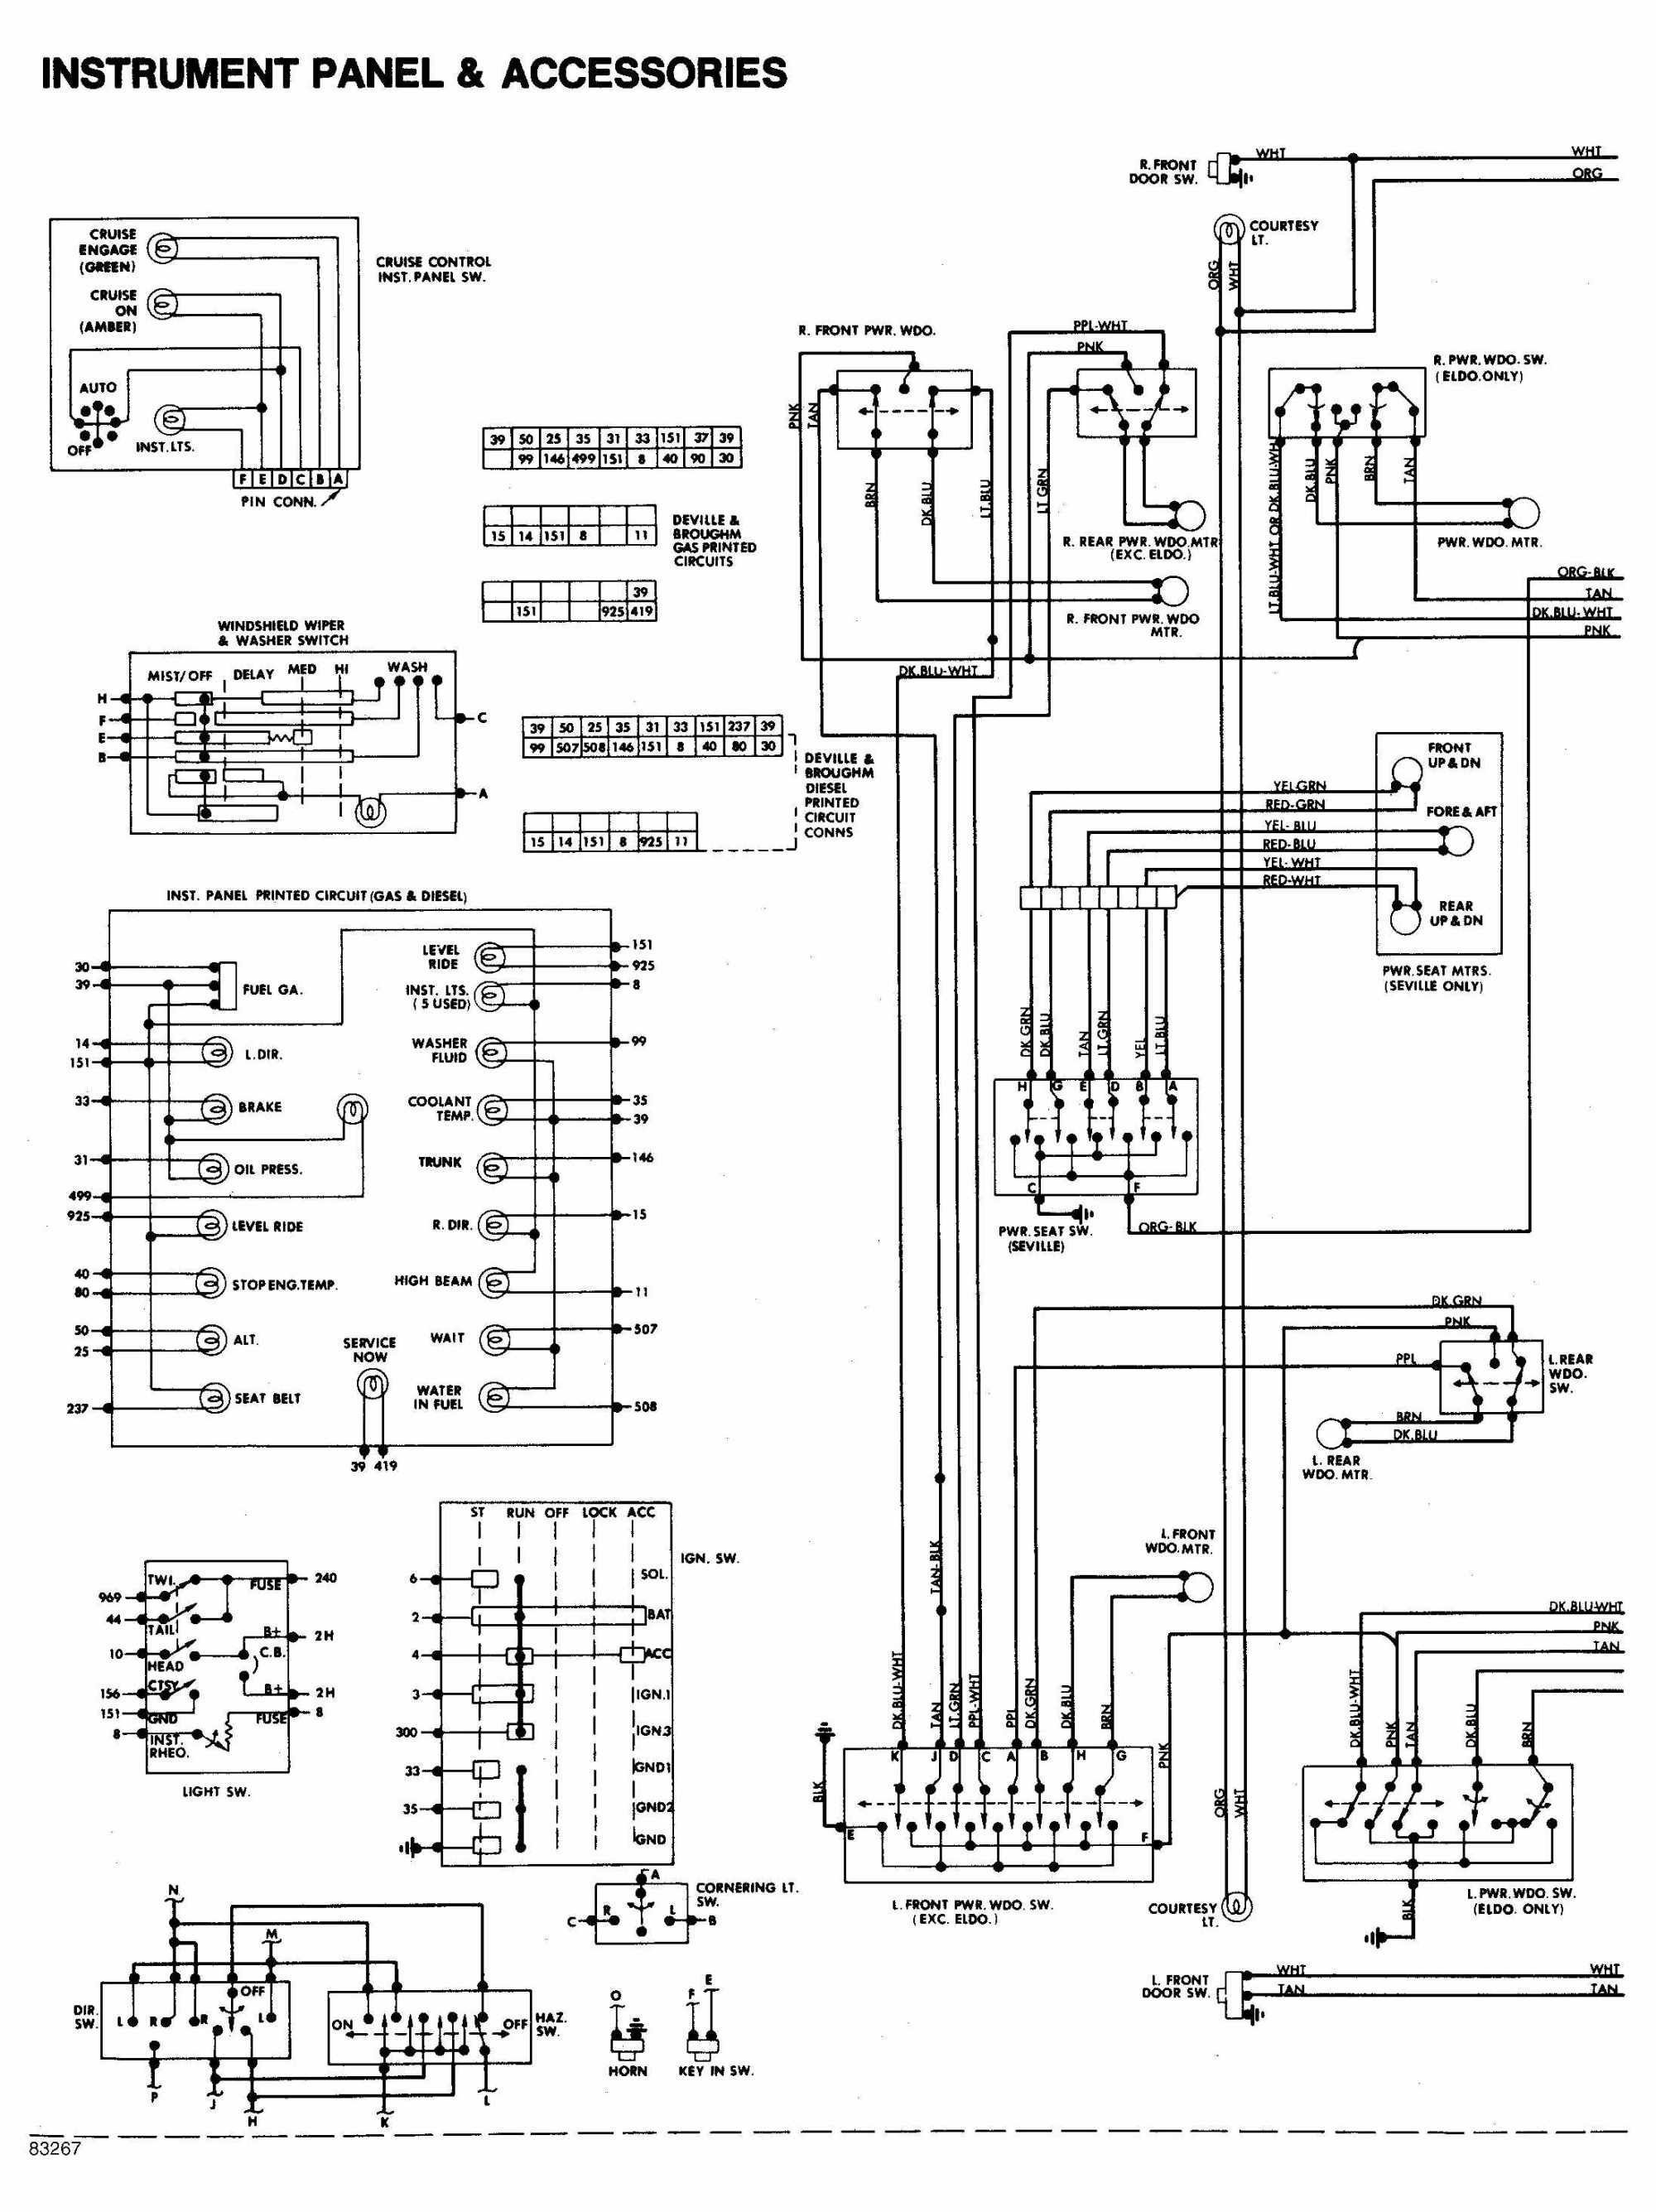 hight resolution of 2008 cts fuse box diagram wiring schematic wiring diagrams img 2006 ford explorer fuse box diagram 2008 cts fuse box diagram